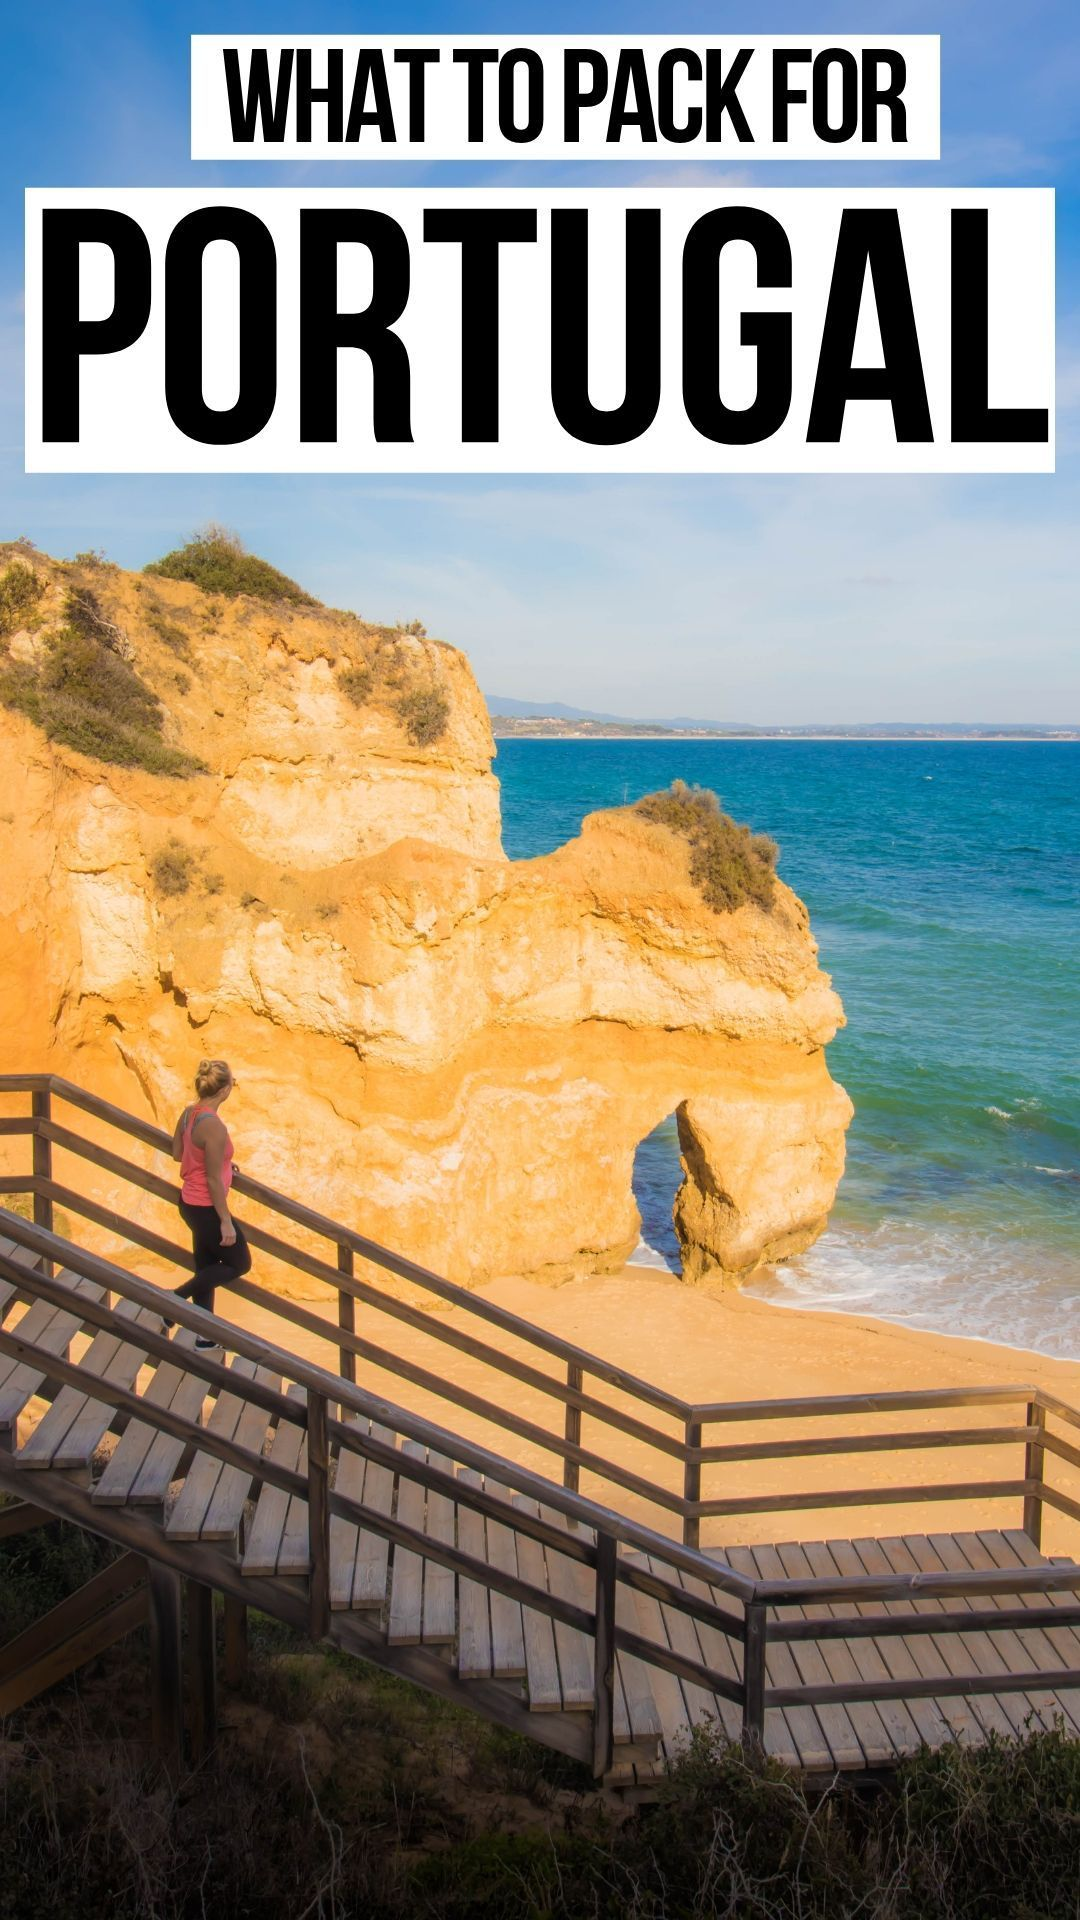 The #best #packing #list #for #Portugal #/ #What #to #bring #to #Lisbon #/ #What #to #bring #to #the #Algarve #and #Lagos #and #all #the #surrounding #beaches #/ #Fashion #in #Portugal #/ #Travel #in #Portugal #/ #beaches #algarve #lagos #lisbon #portugal #porto #travel #bestplacesinportugal